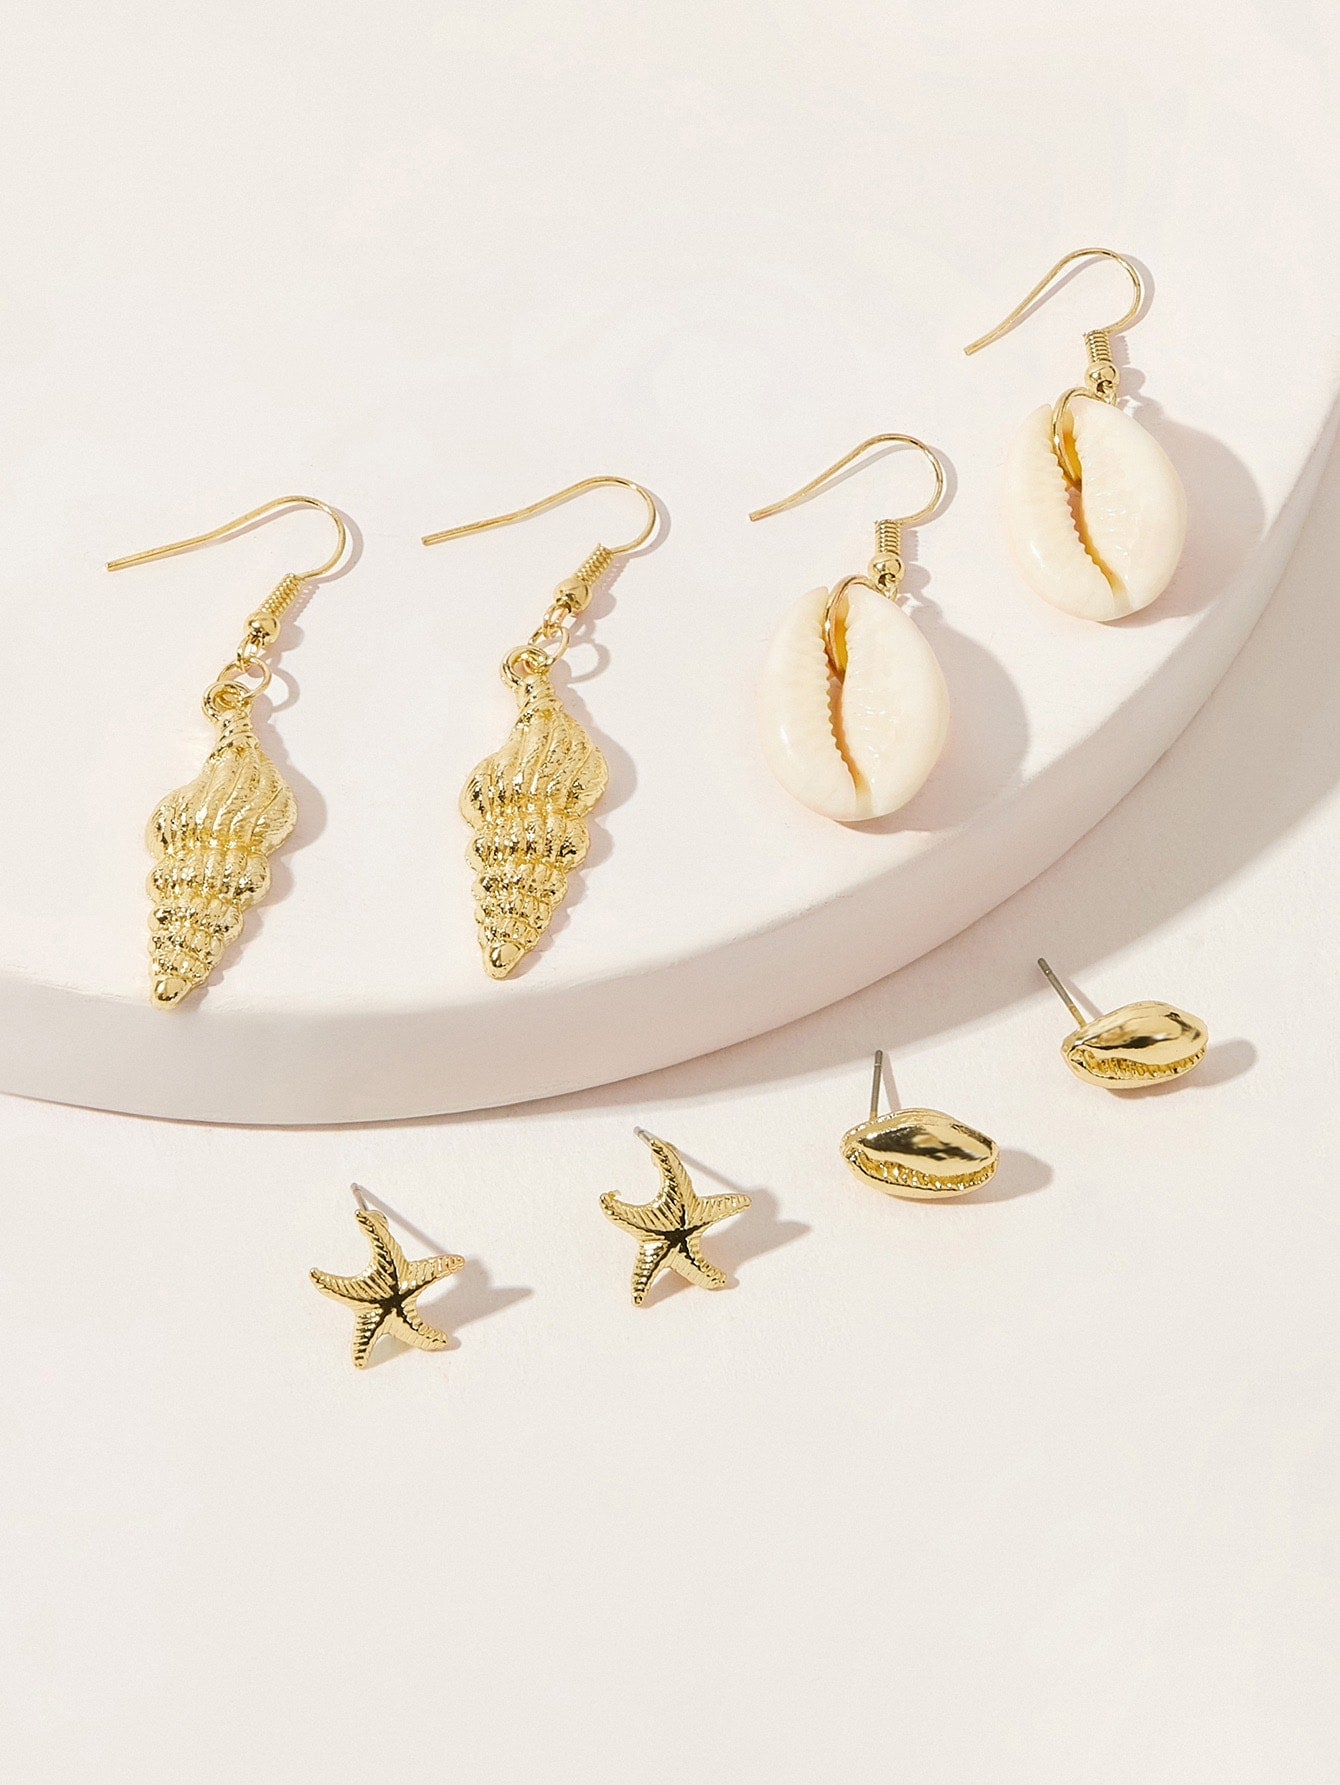 4 Pairs Golden Shell Dangle & Stud Earrings